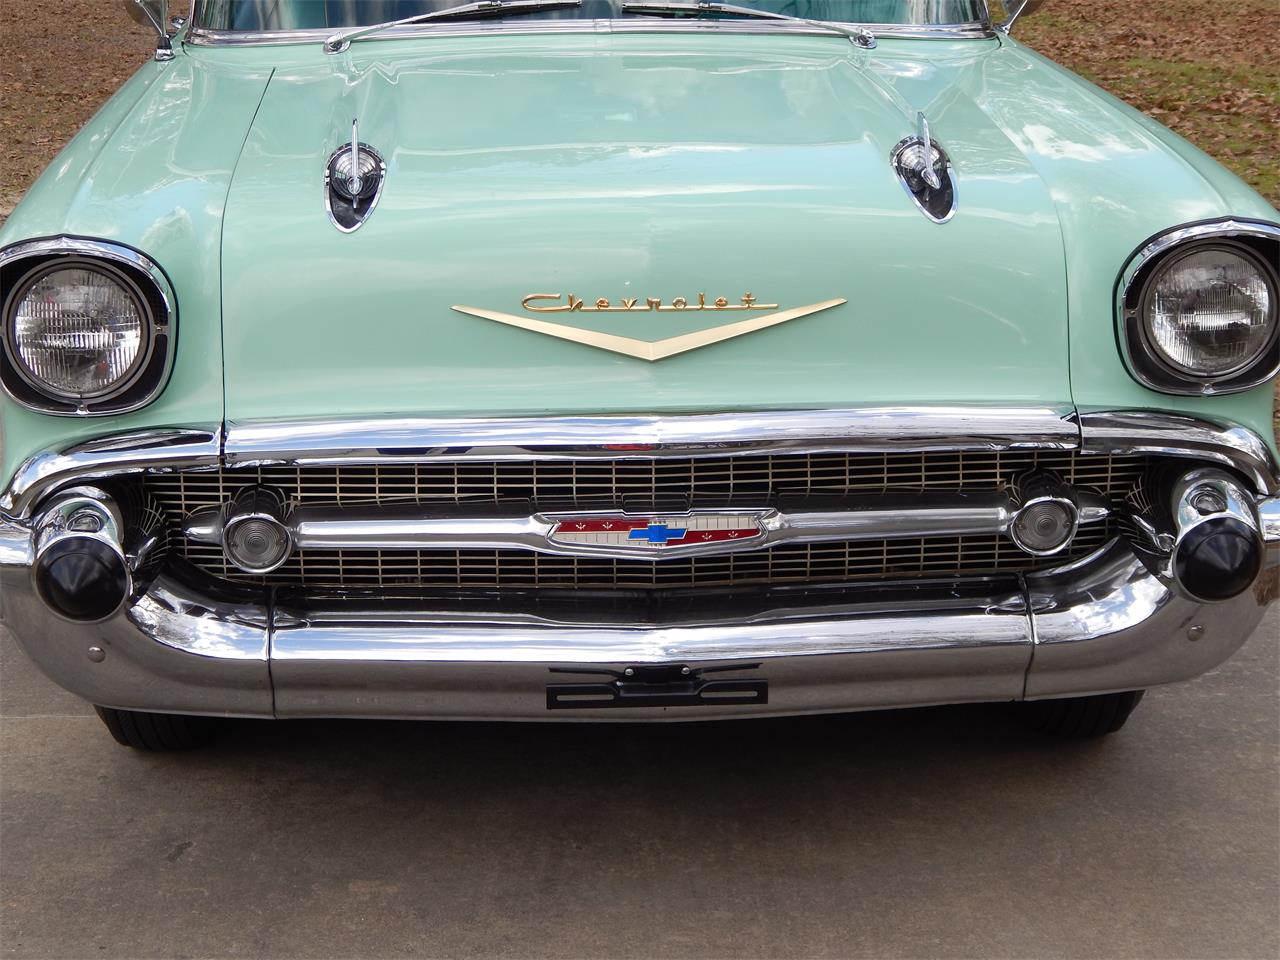 1957 Chevrolet Bel Air for sale in Online, Online Auction – photo 8